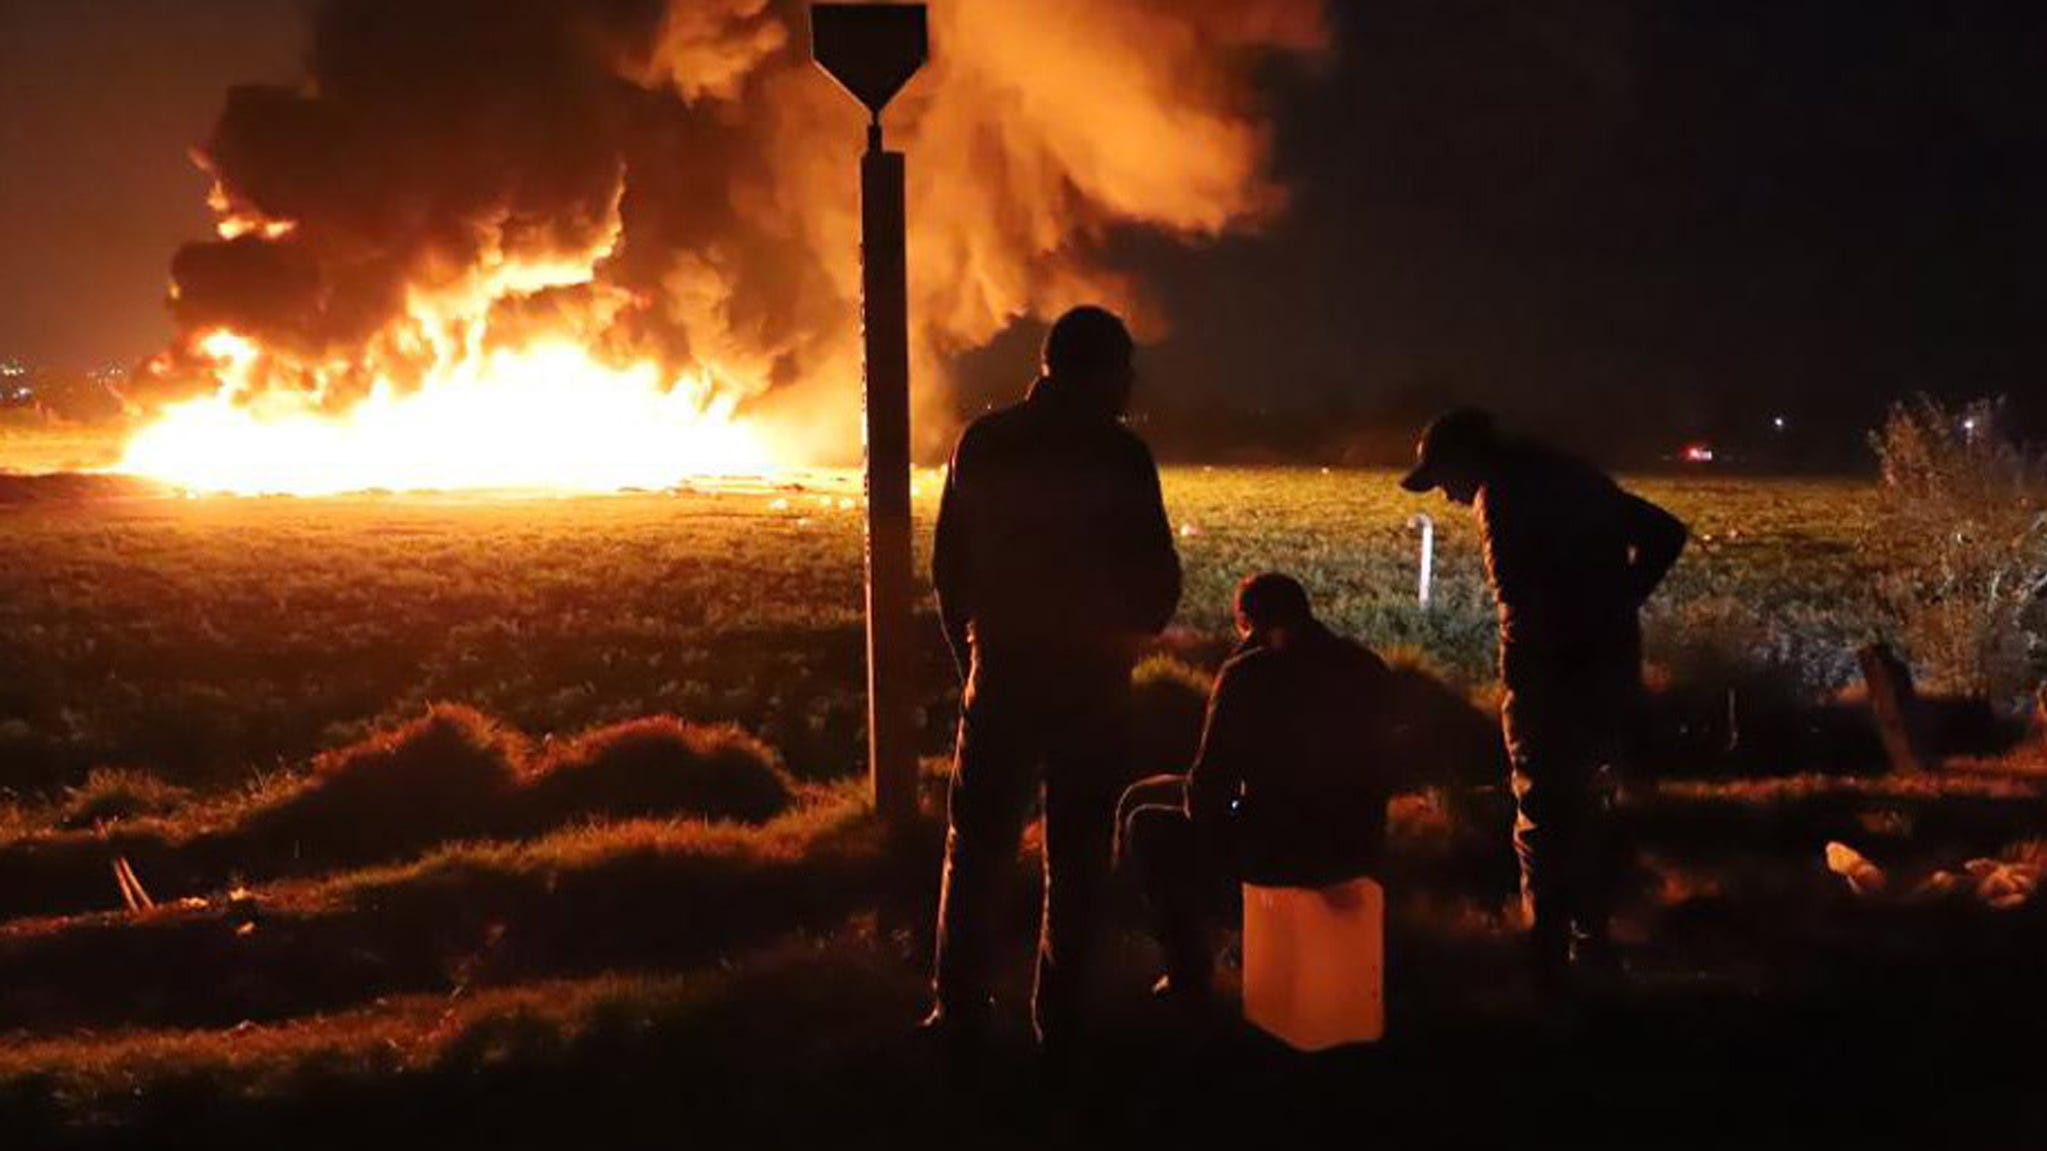 People wait in front of a wall of fire after an explosion of an illegal tap on Mexican oil company Pemex's pipeline in Tlahuilipan, state of Hidalgo, Mexico.